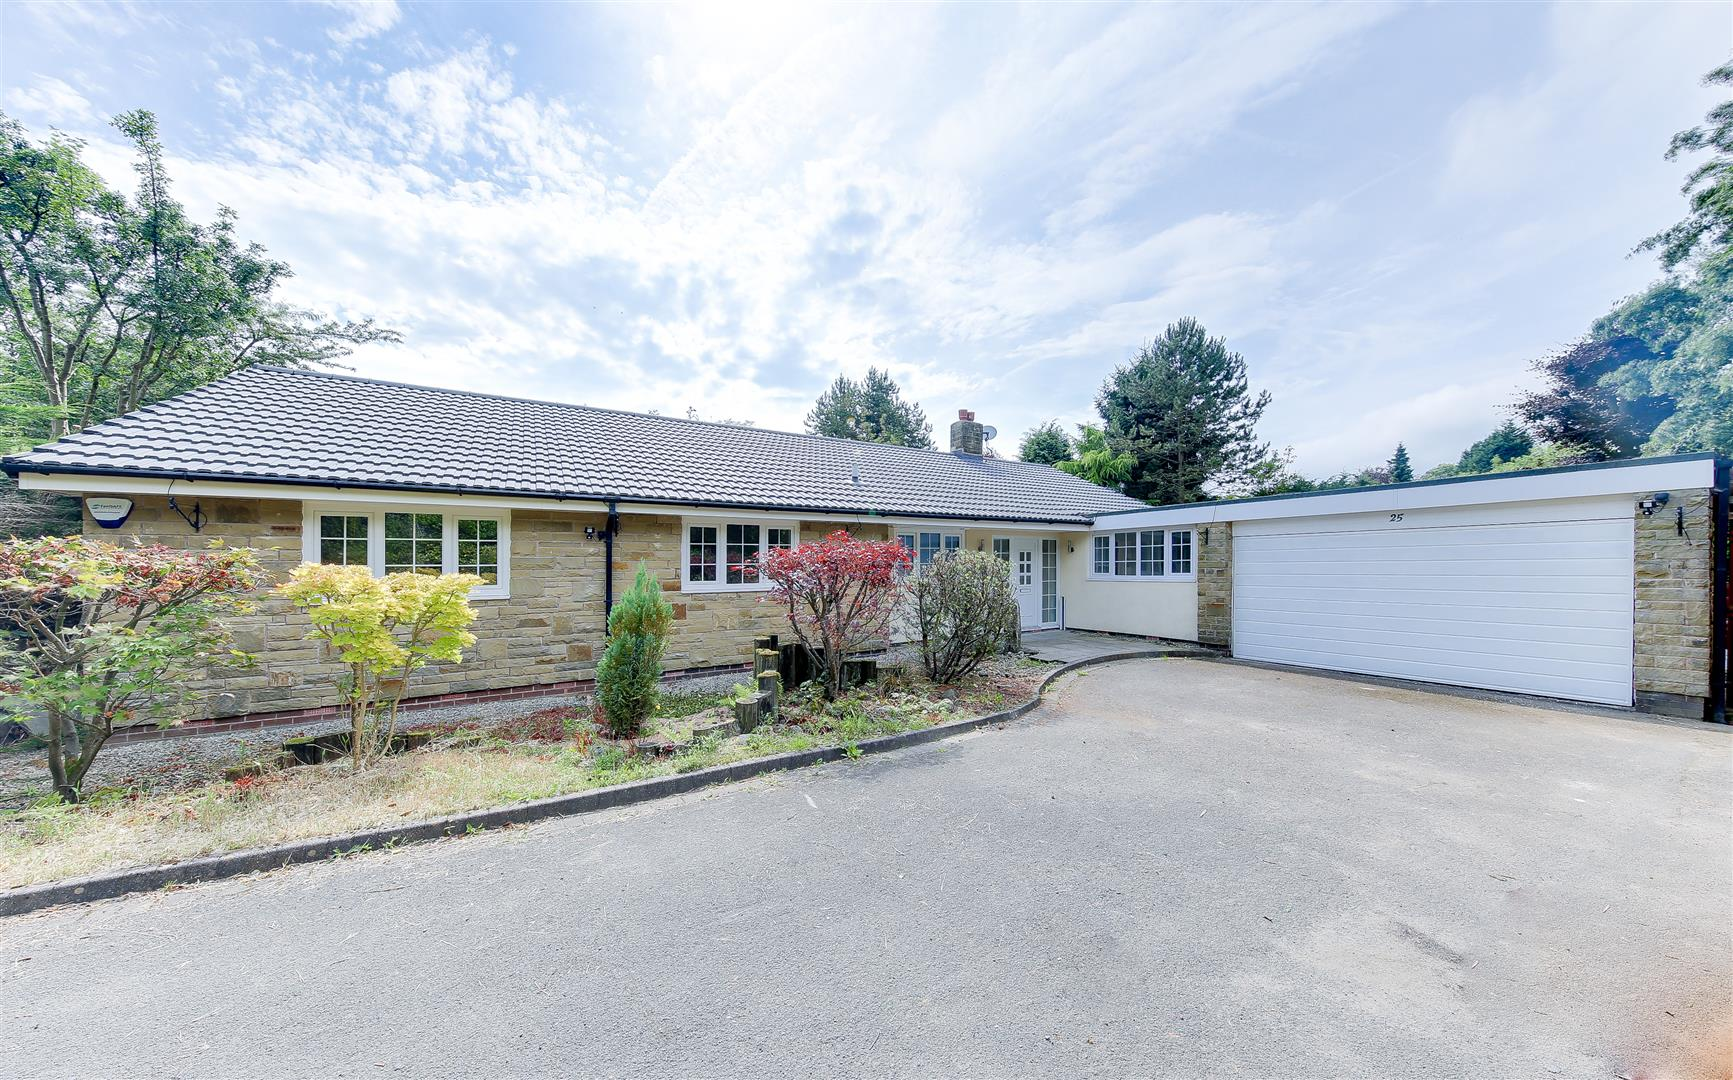 4 Bedrooms Detached Bungalow for sale in Meadow Park, Irwell Vale, Bury